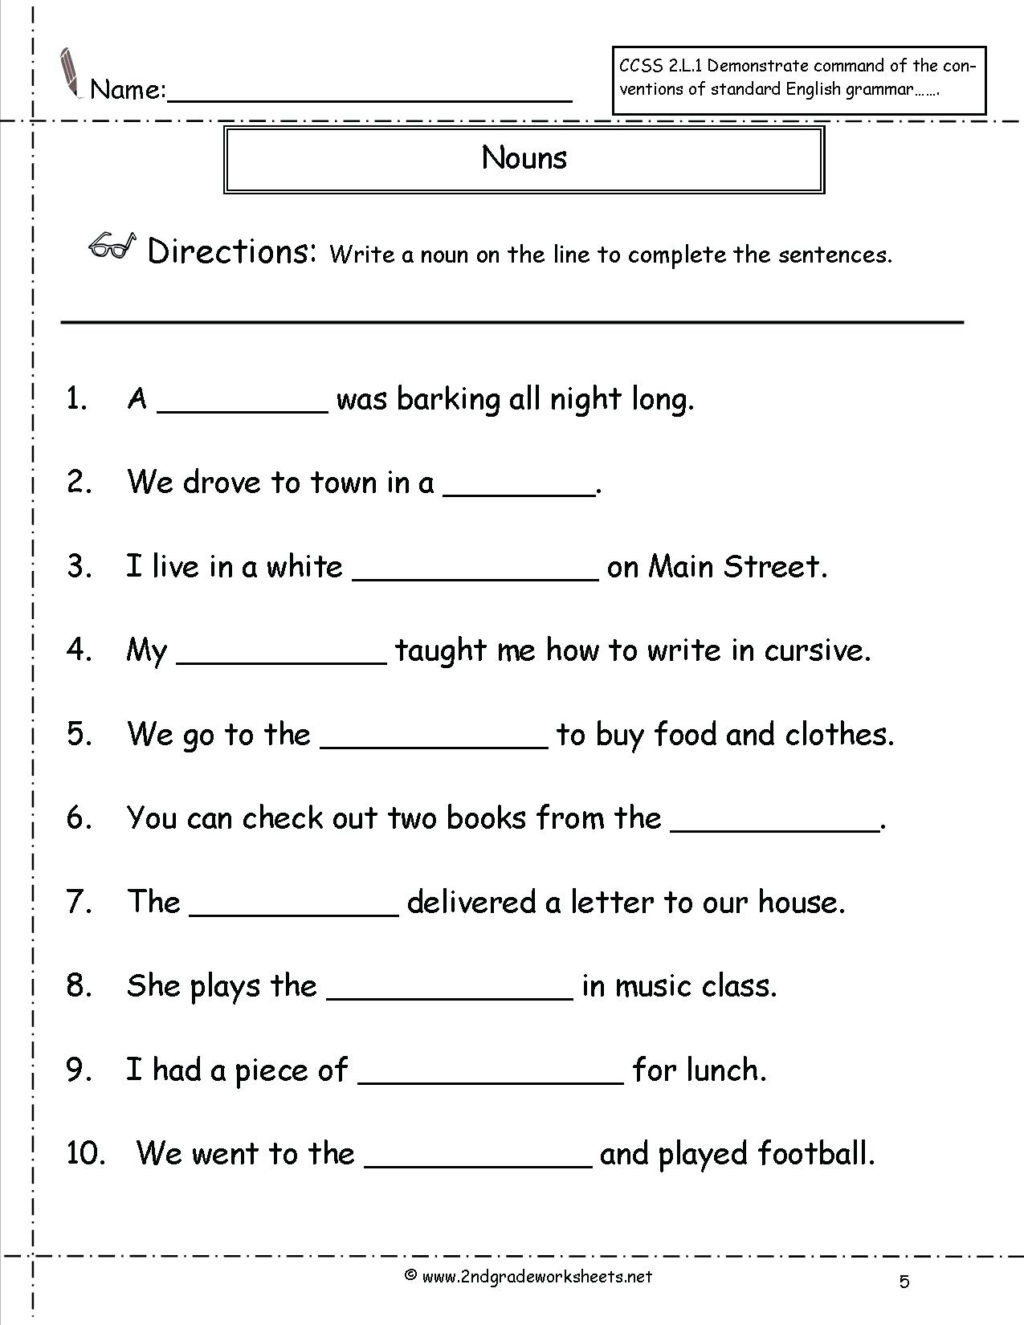 Second Grade Pronouns Worksheet Worksheet Free Printable Second Grade Reading